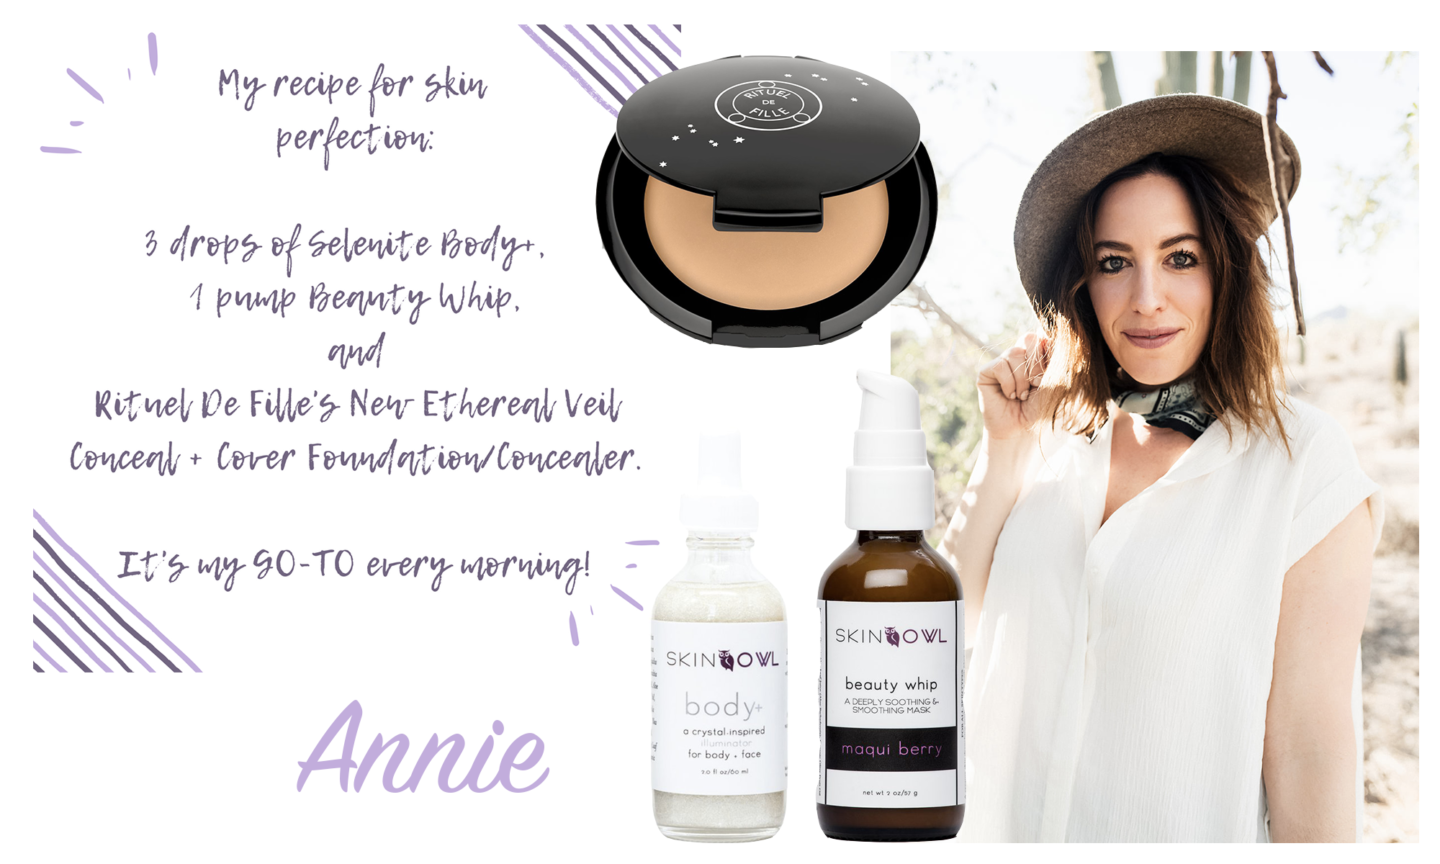 What We're Wearing || Green Beauty Edition | SkinOwl.com Annie uses Selenite Body+, Beauty Whip, and Rituel de Fille's Ethereal Veil Conceal + Cover foundation